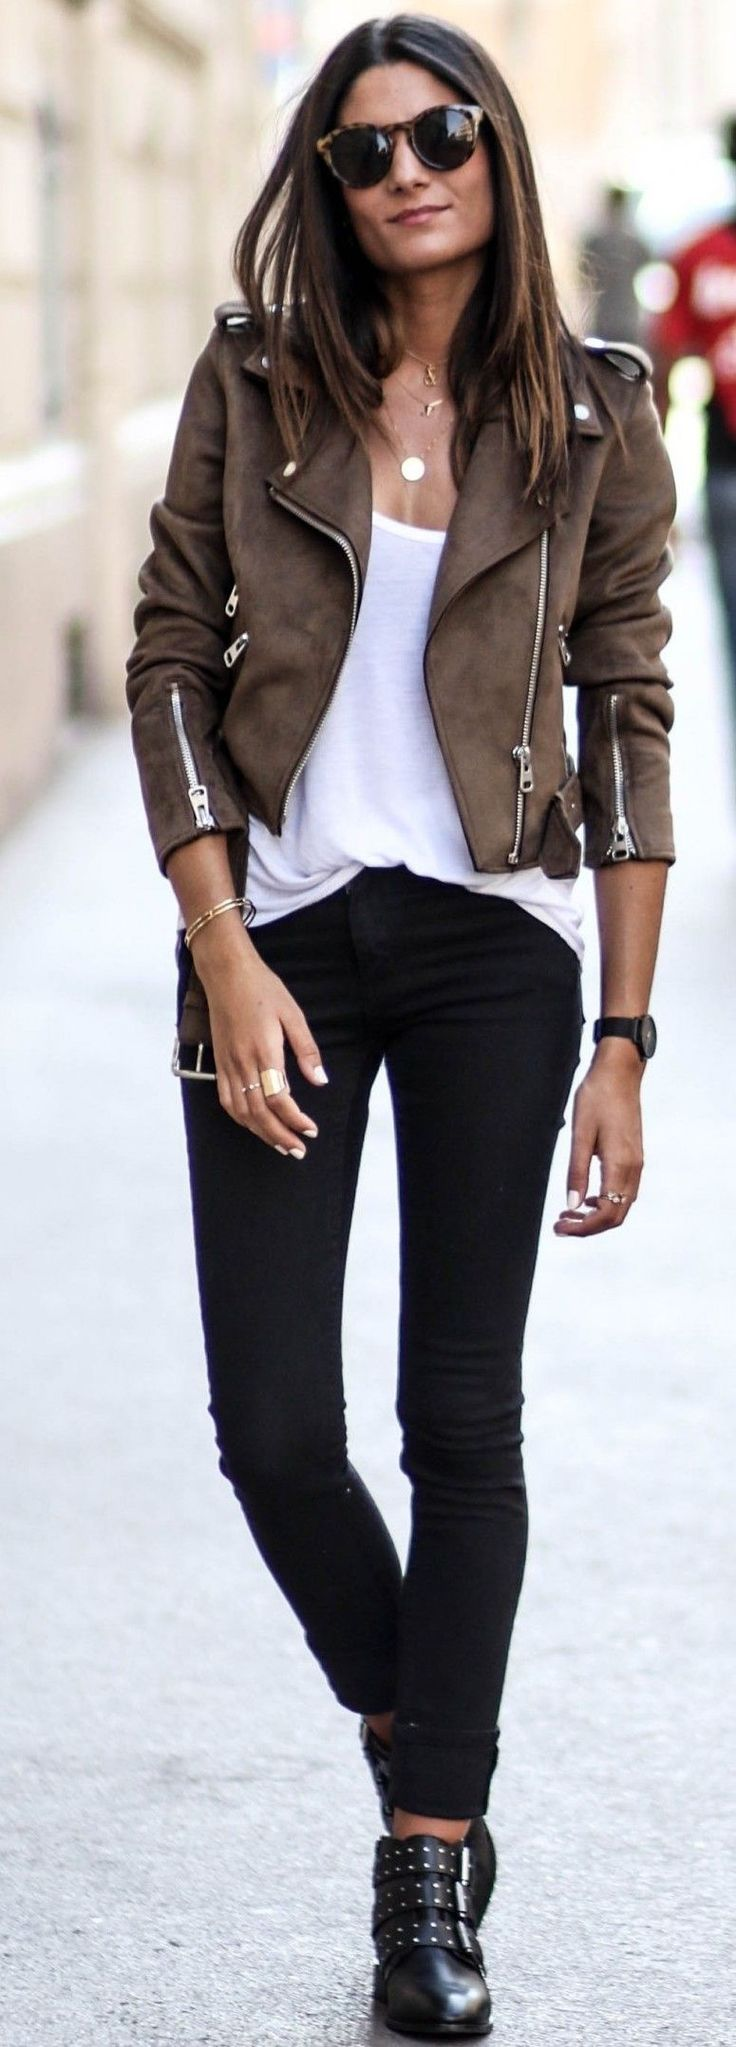 Leather jacket street style - 60 Trending Fall Street Style Outfit Ideas To Upgrade Your Wardrobe Cute Jacketsbiker Jacketsleather